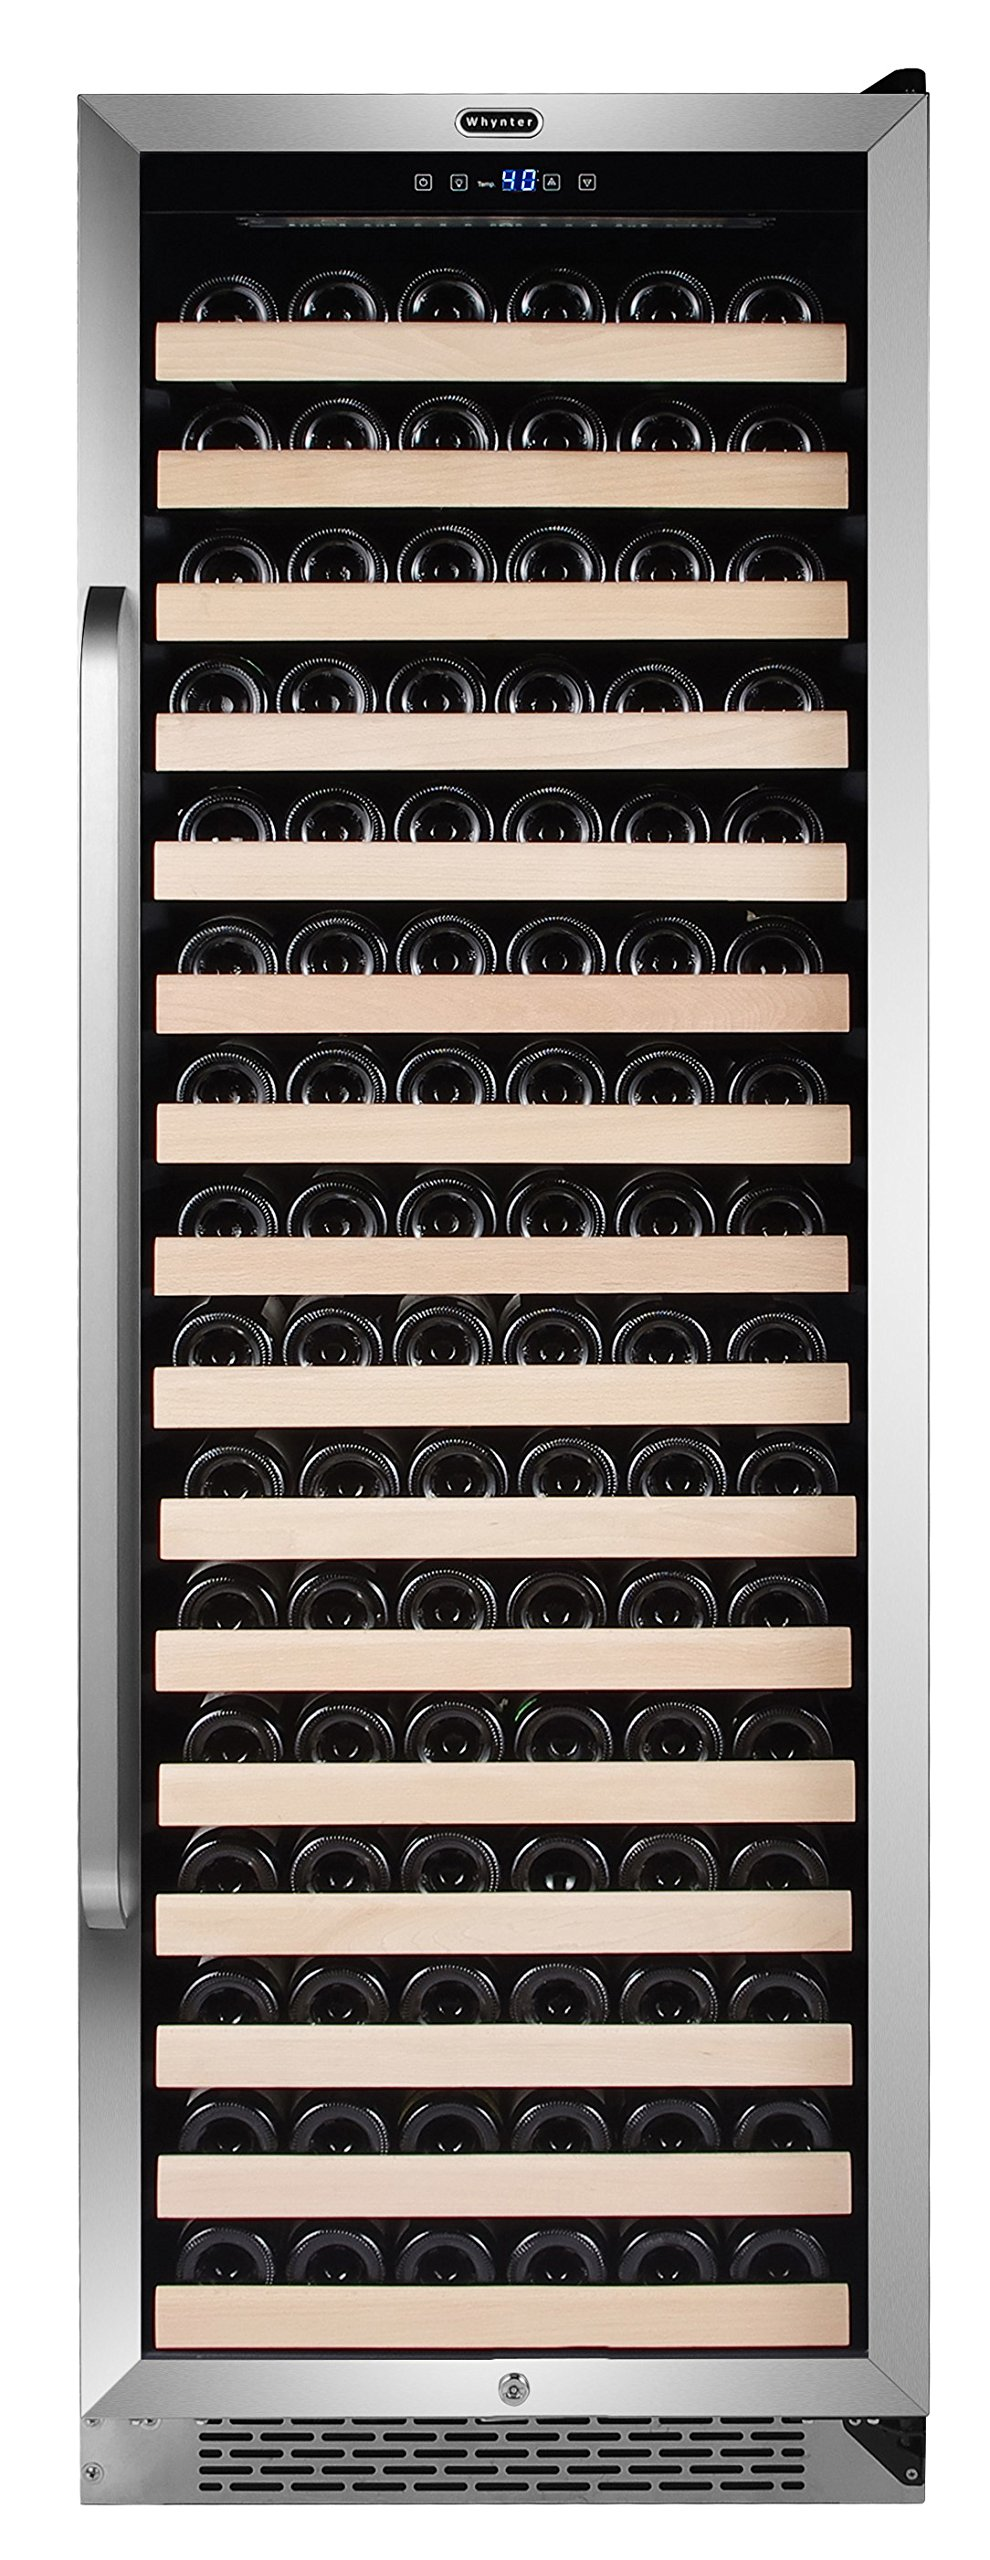 Whynter Stainless Steel BWR-1662SD 166 Bottle Built-in Compressor Wine Refrigerator Rack and LED display, One Size by Whynter